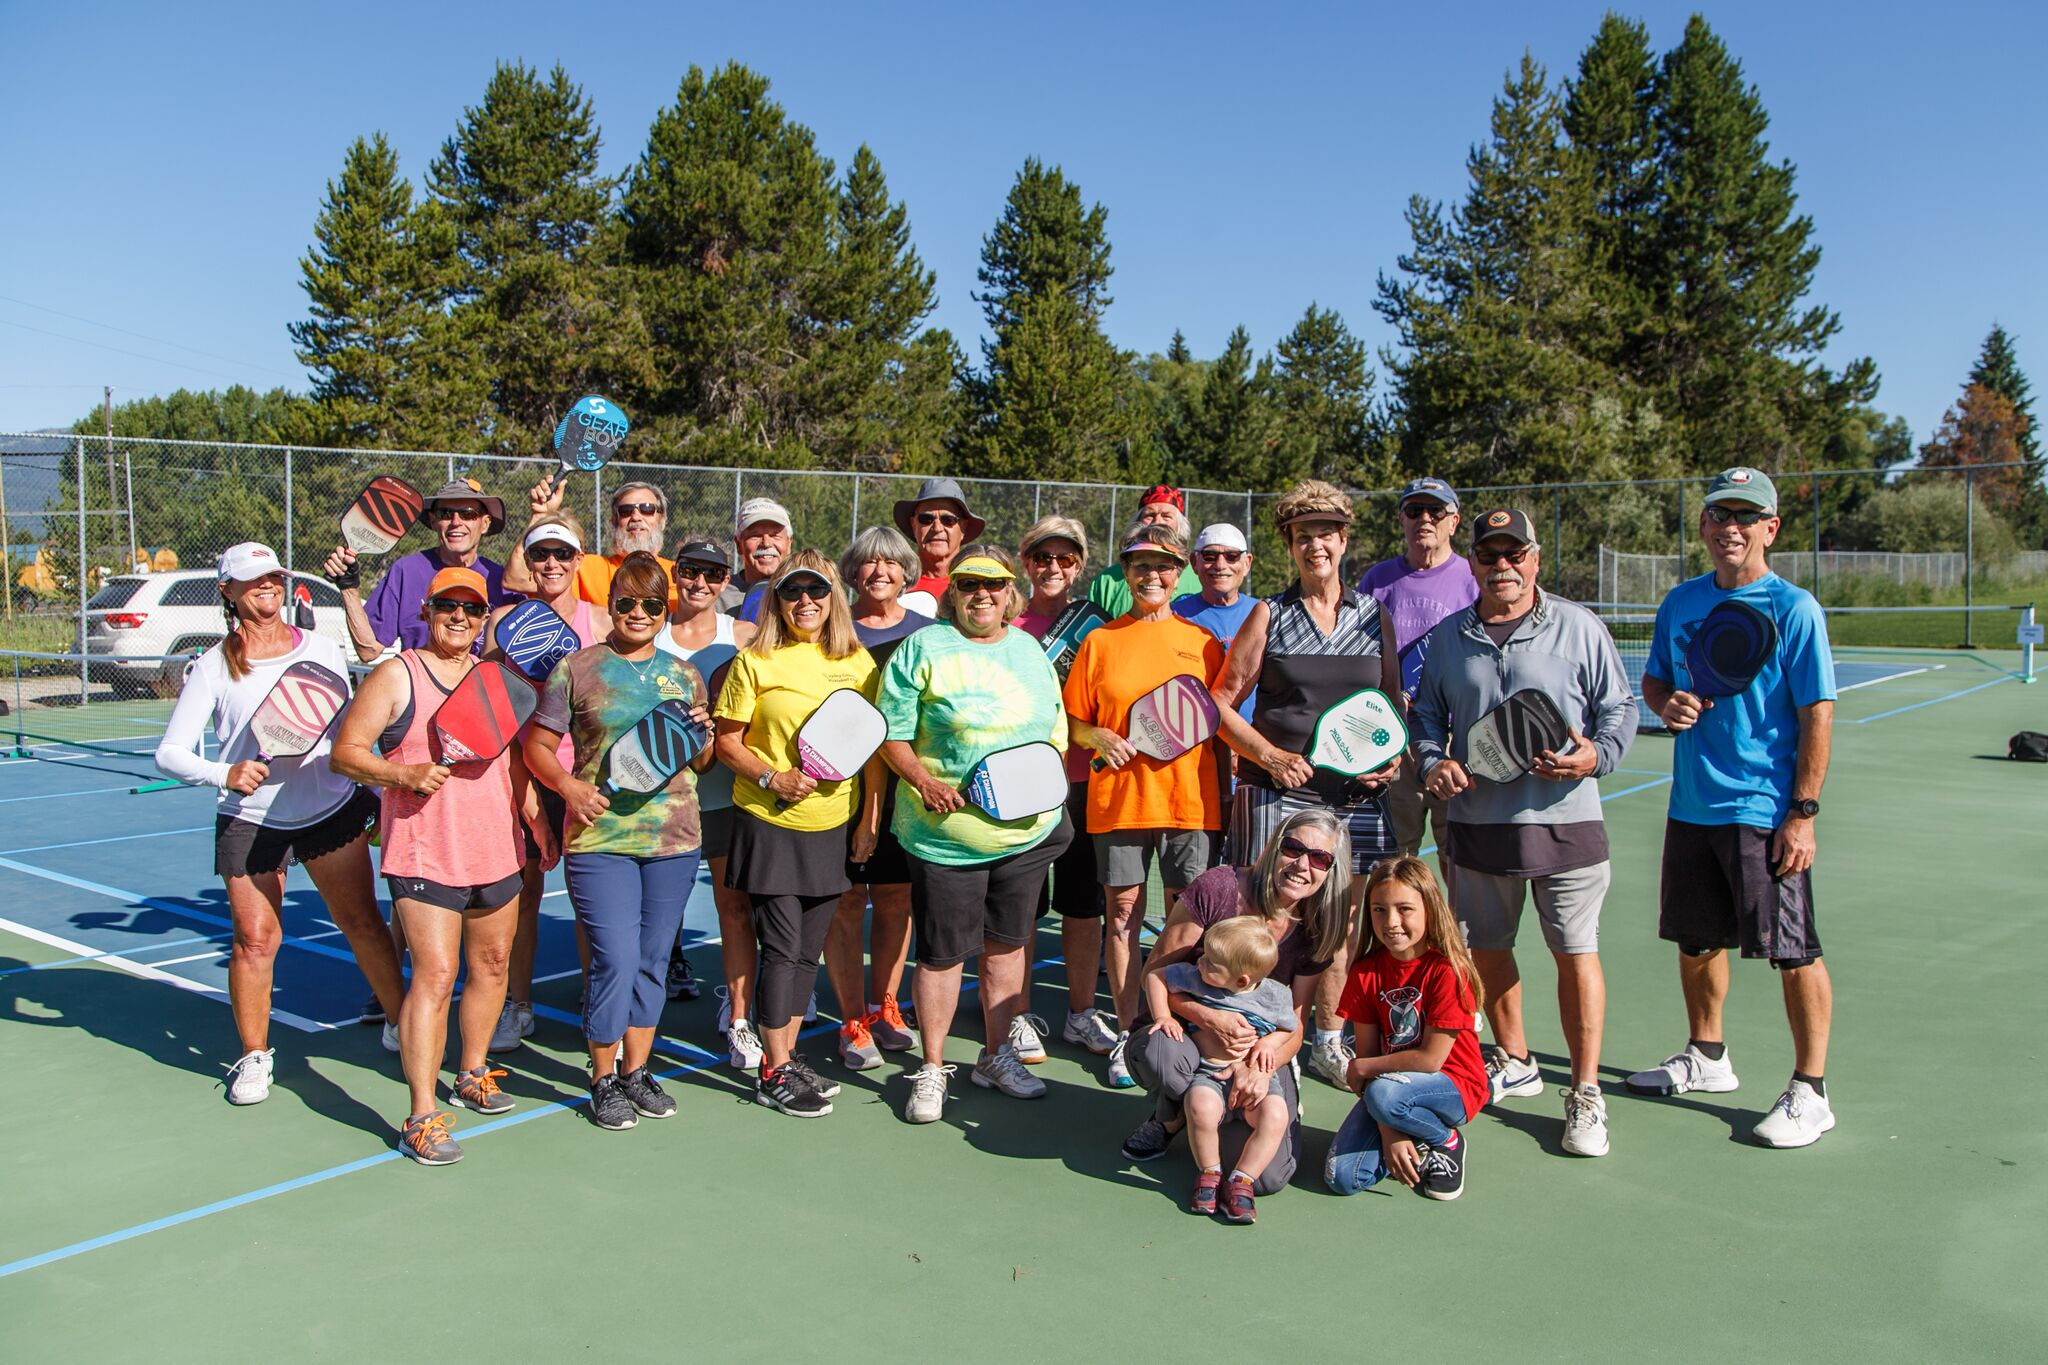 Locals participate in a Valley County Pickleball Club open house. Photos courtesy of Chesea Tuttle